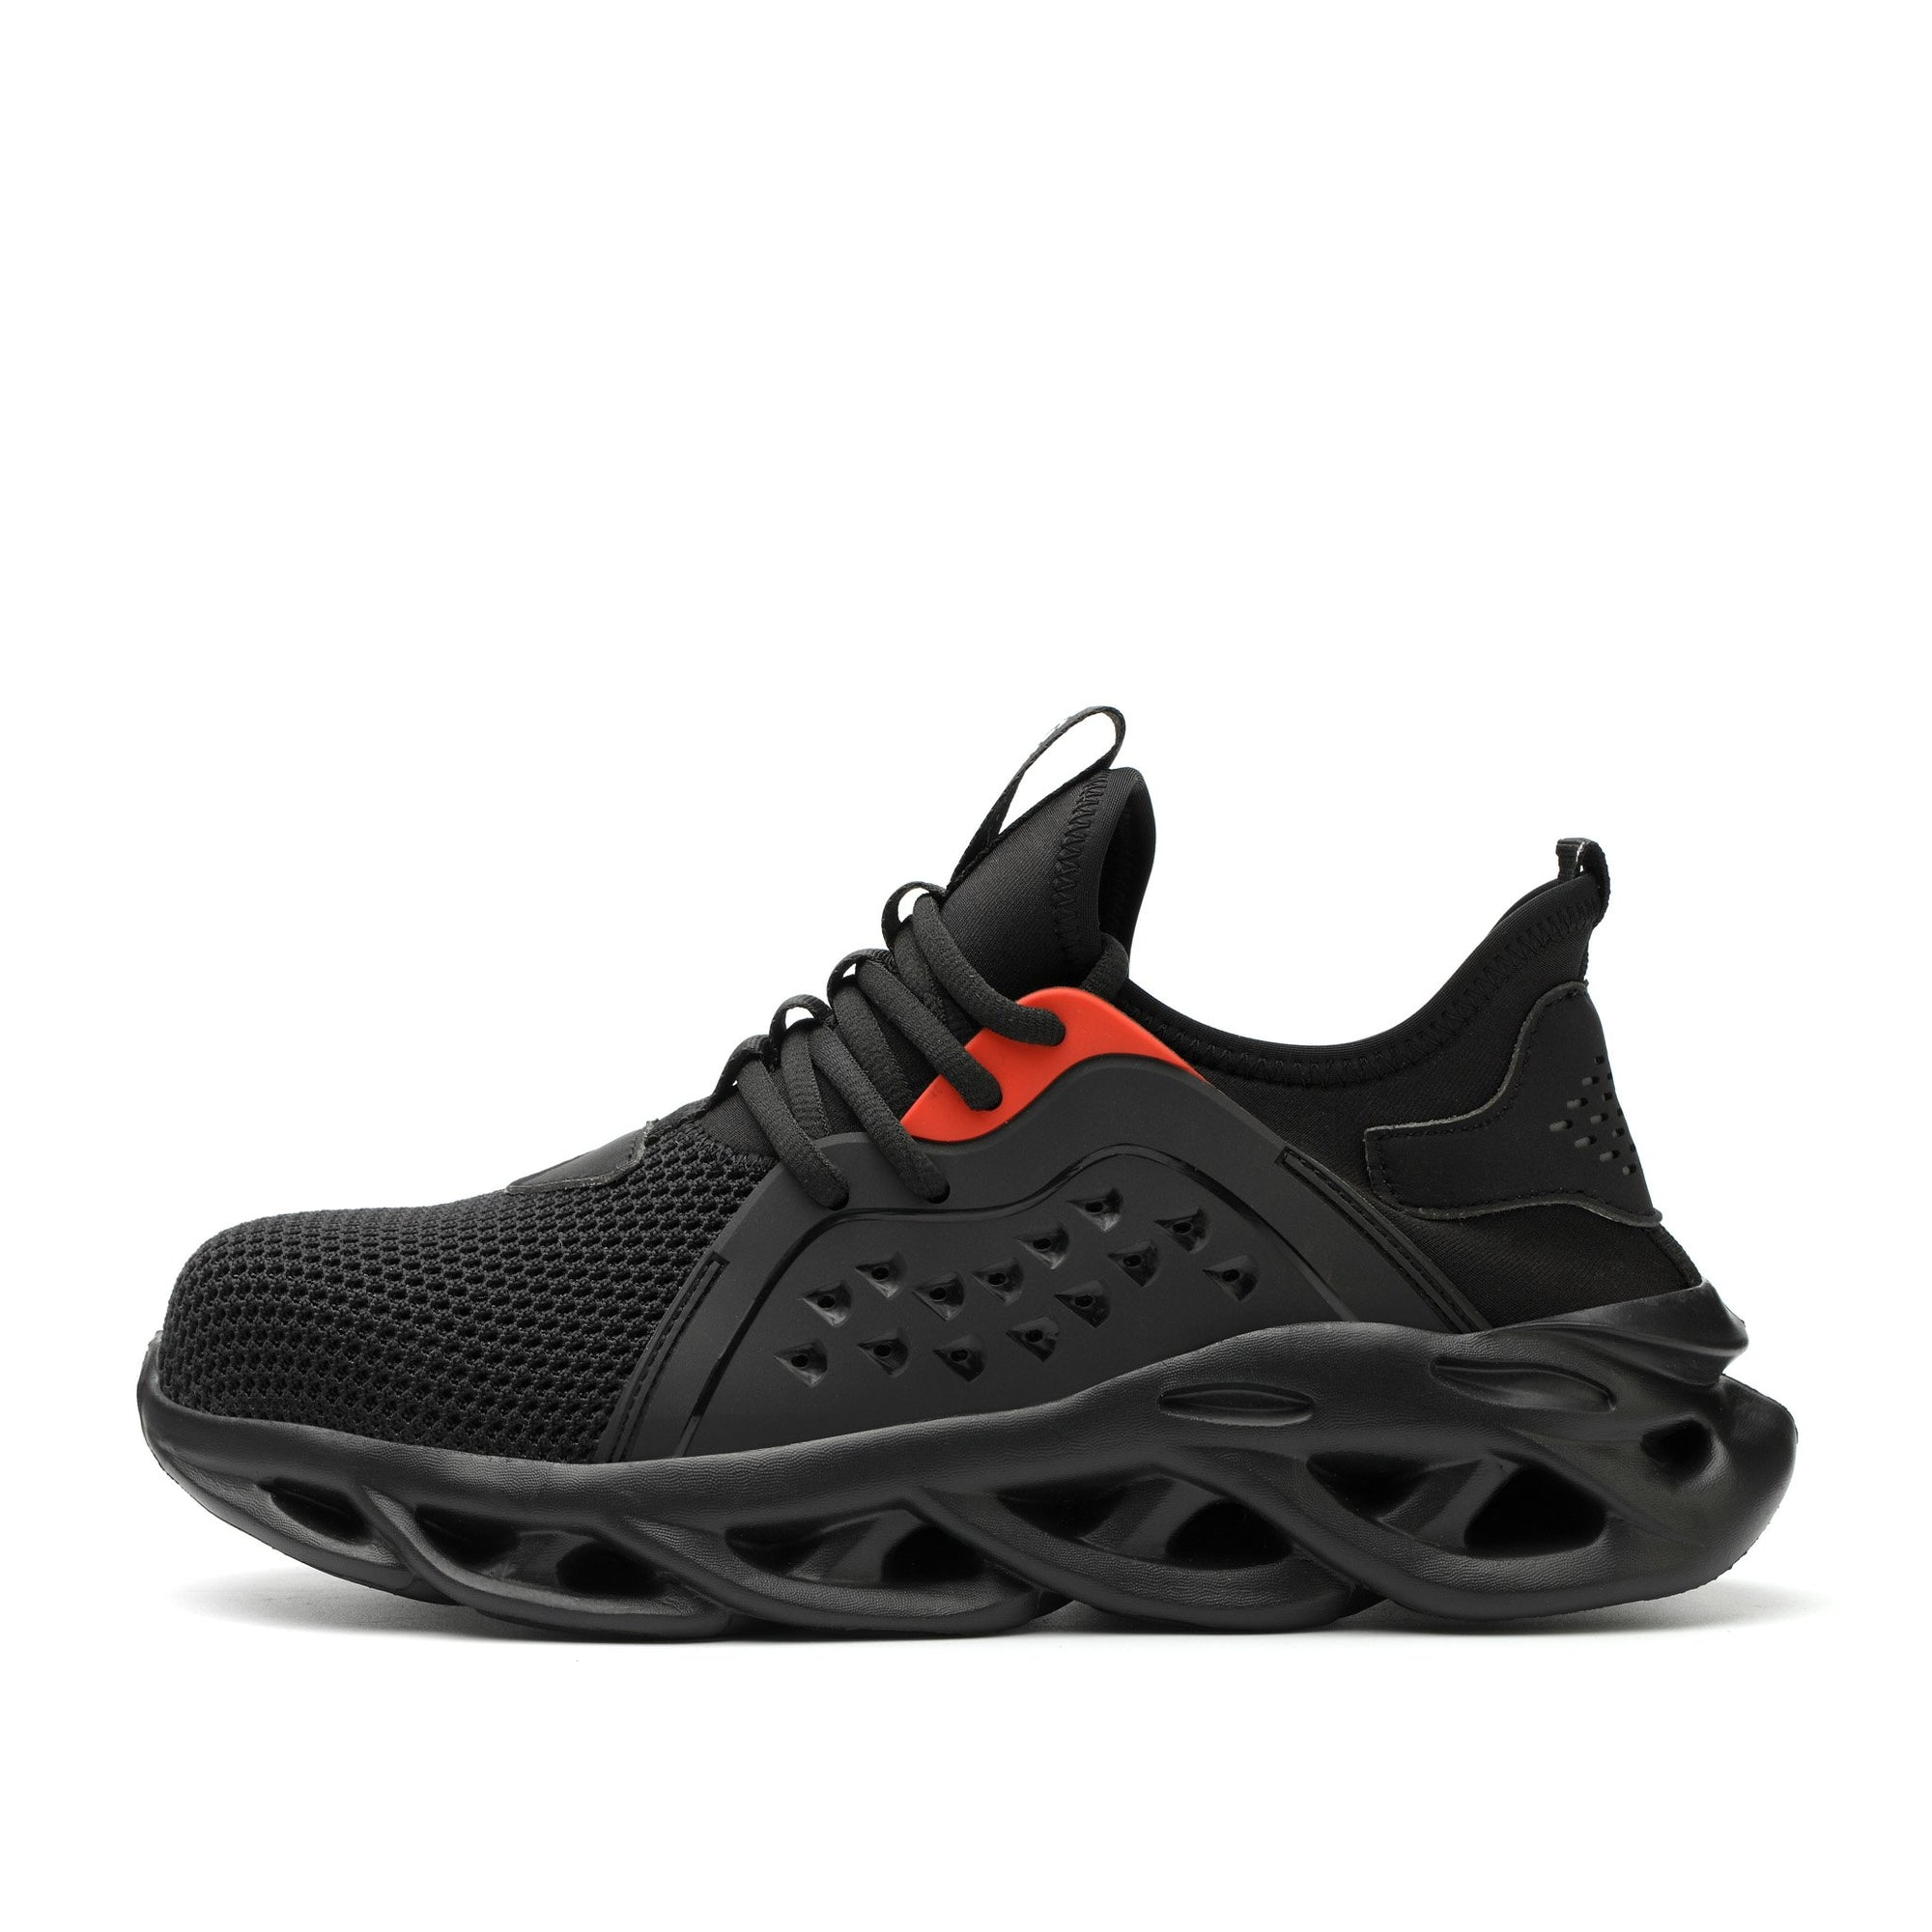 Xciter Mesh Black - Indestructible Shoes